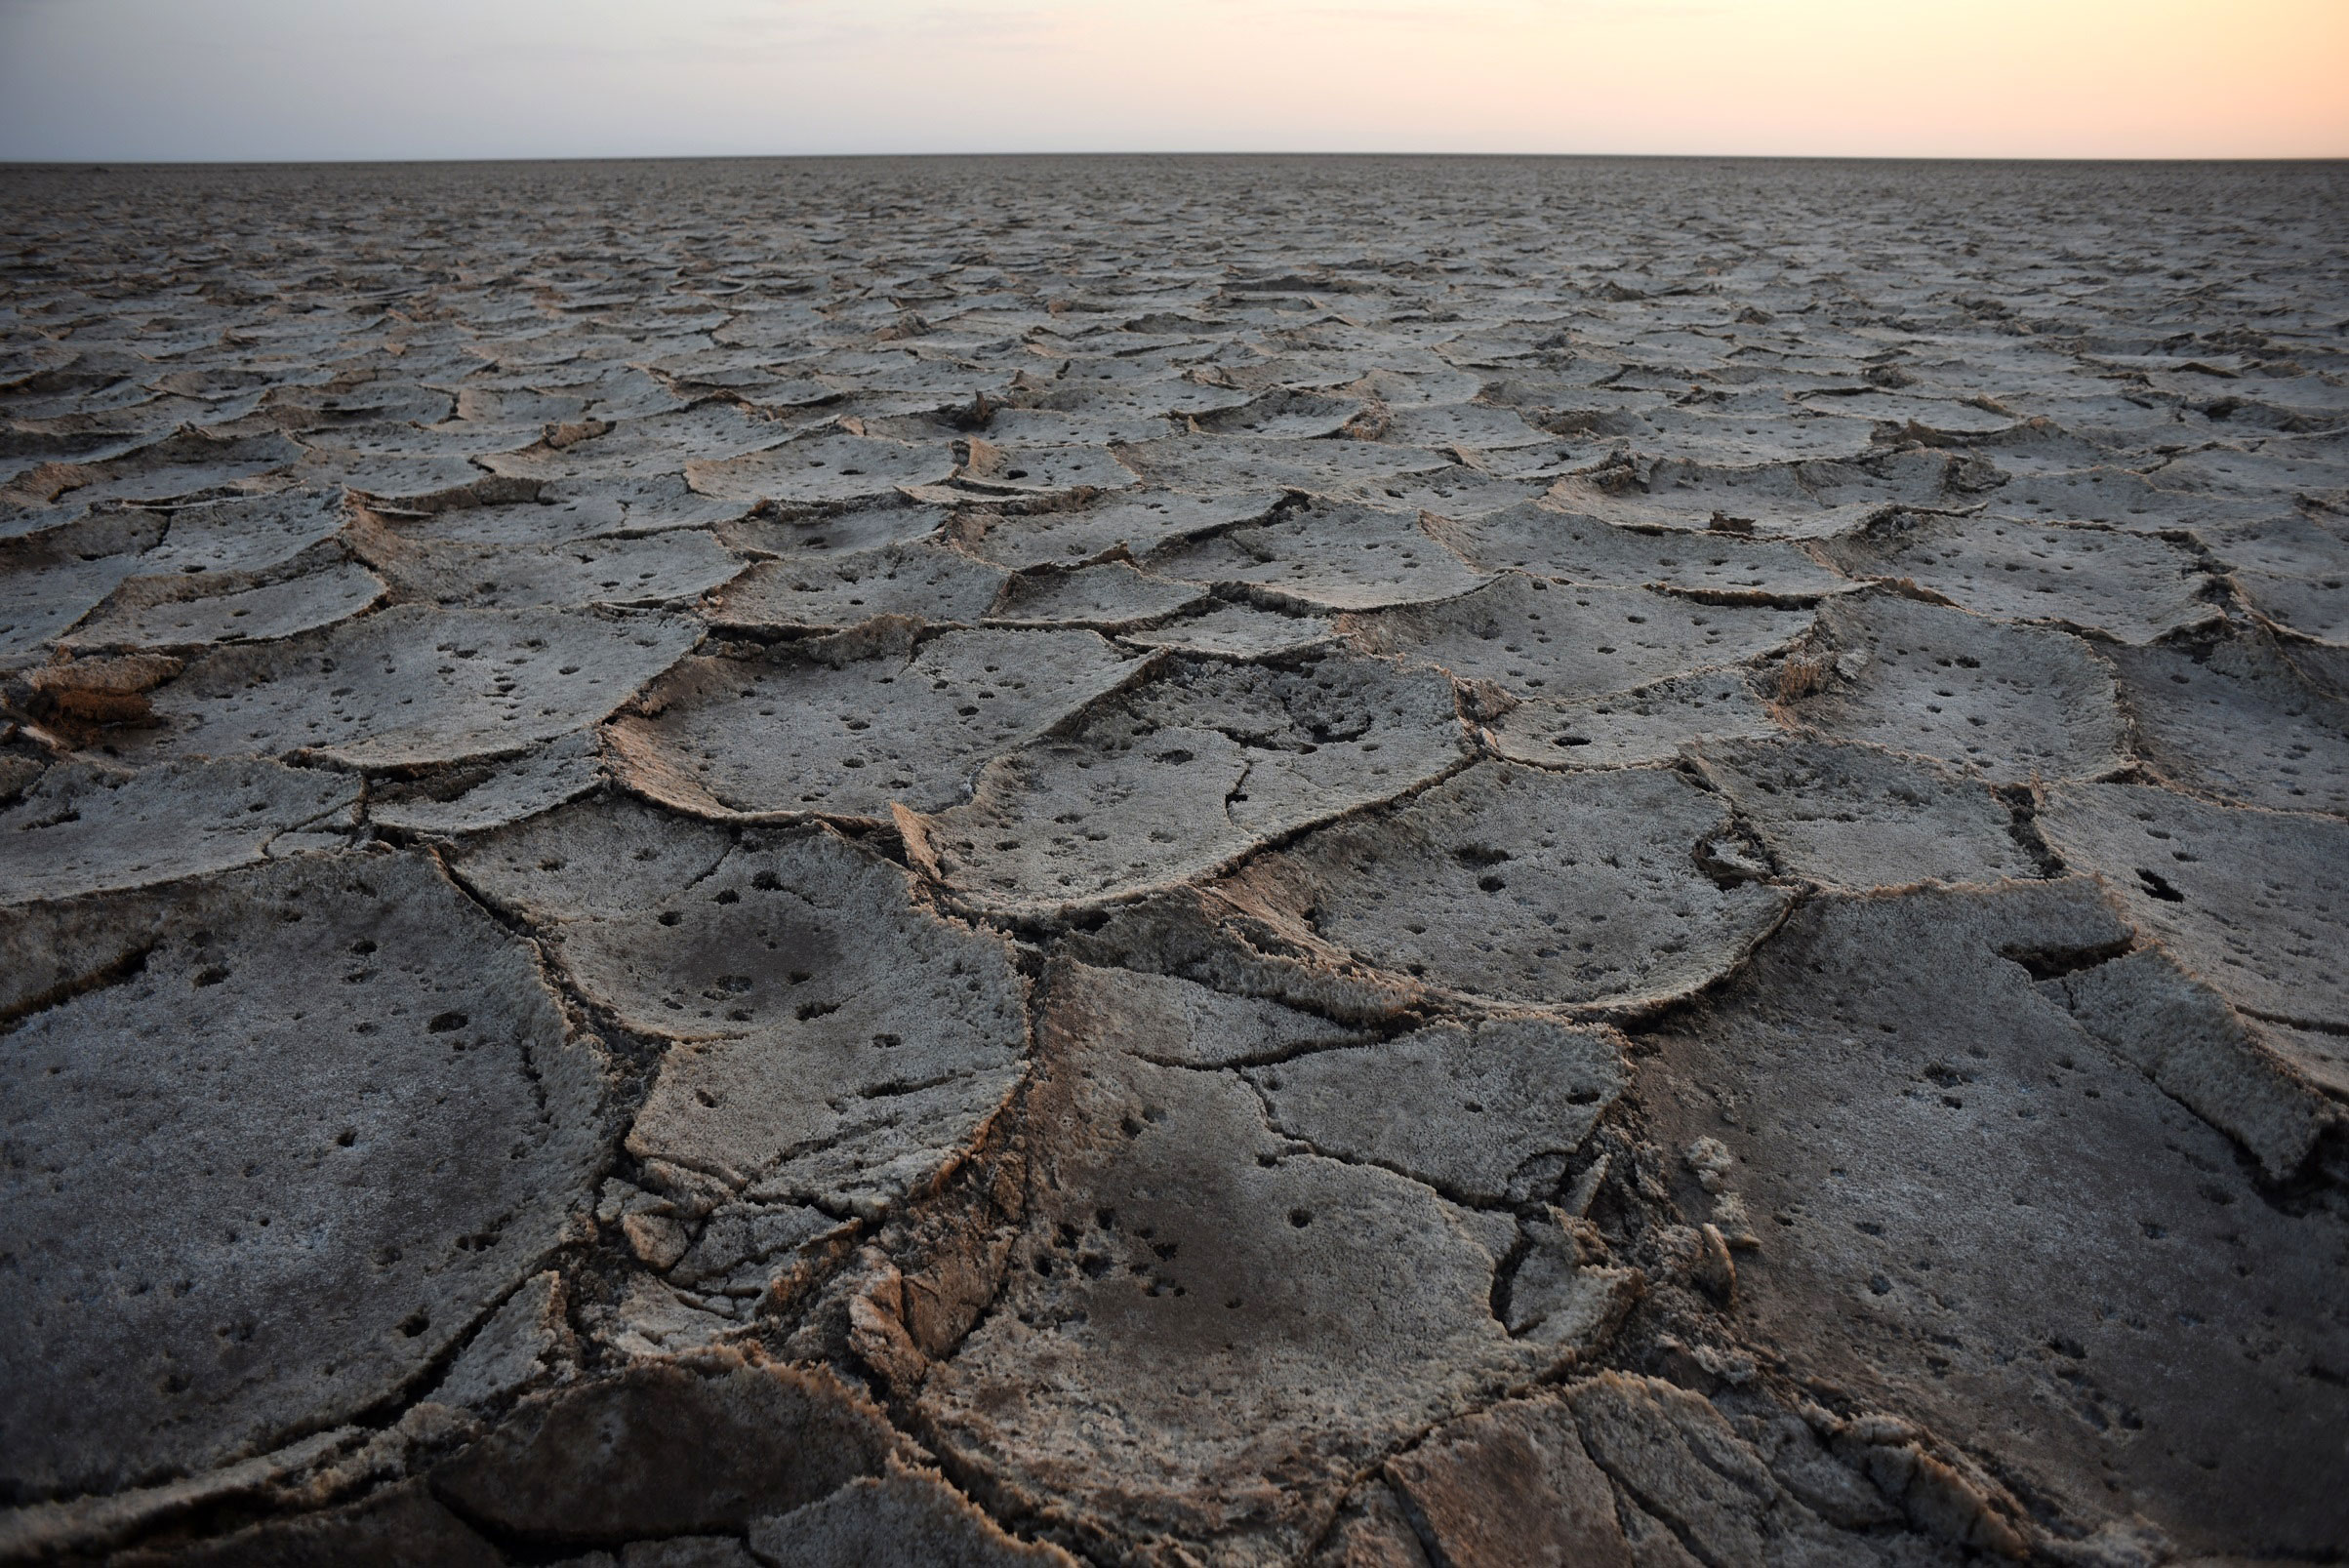 The salt flats of the Danakil Depression were formed tens of thousands of years ago by the evaporation of an inland sea. [Jason Patinkin/Al Jazeera]